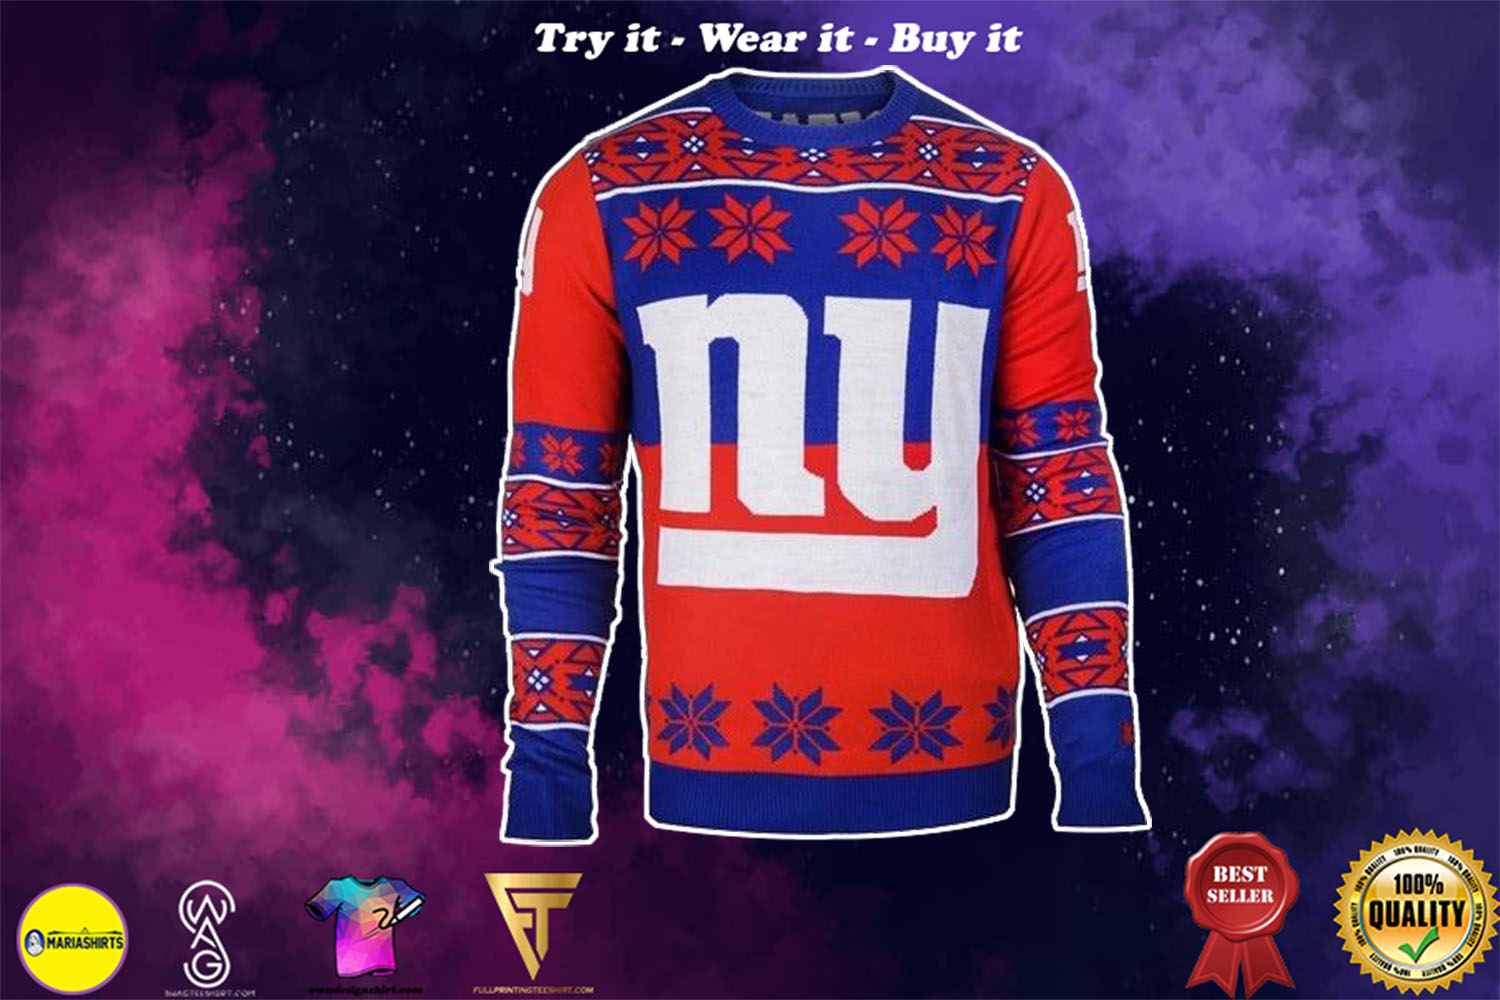 [special edition] new york giants national football league ugly christmas sweater - maria